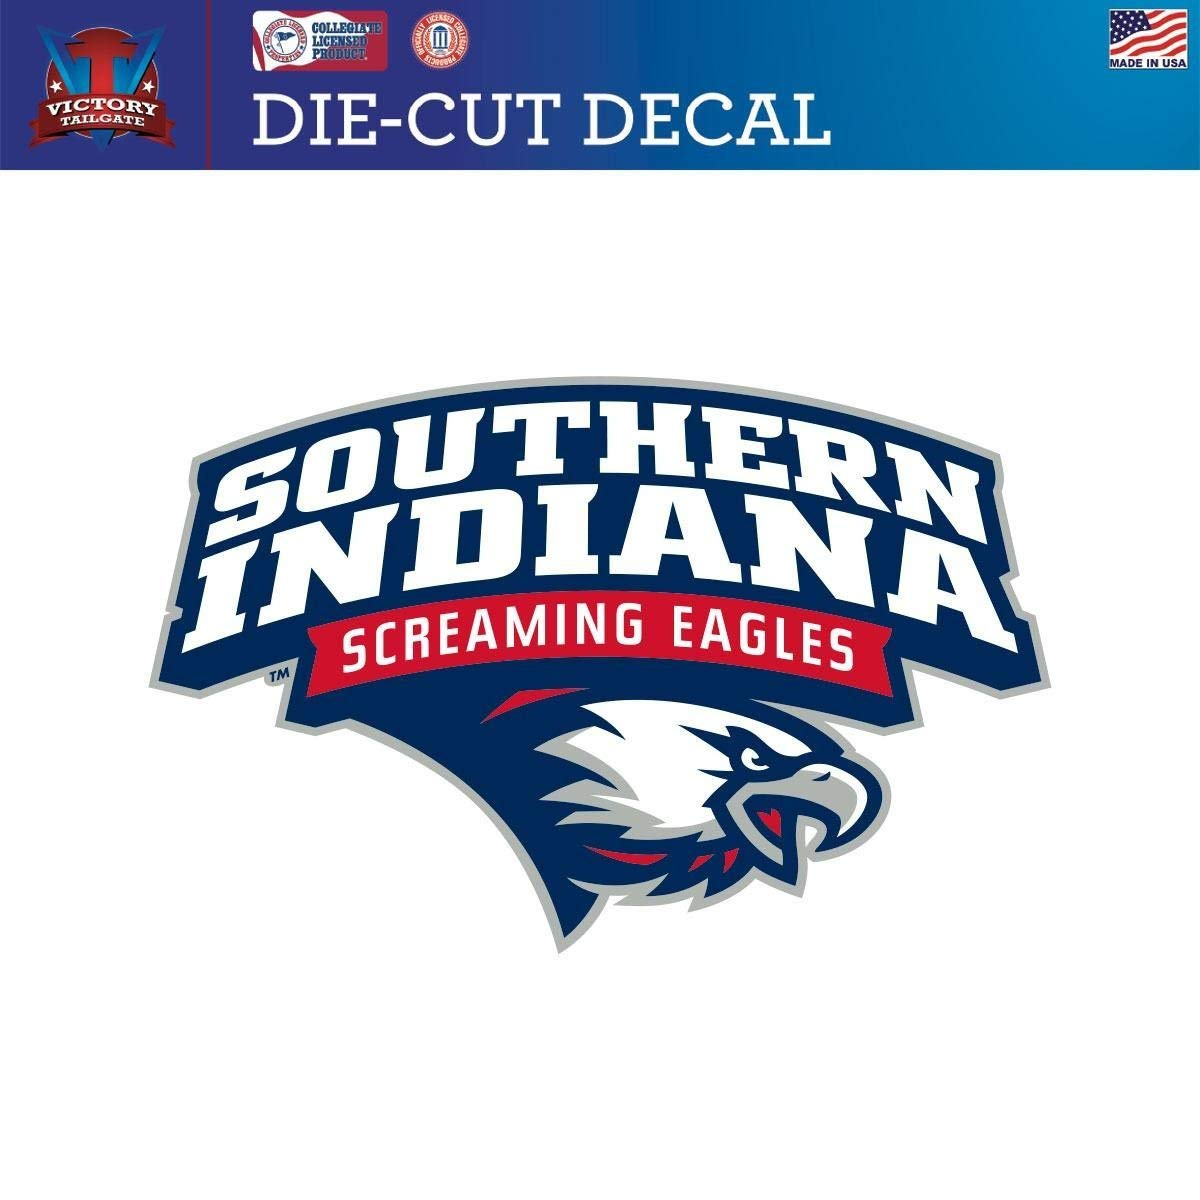 Victory Tailgate Southern Indiana Screaming Eagles Die-Cut Vinyl Decal Logo 1